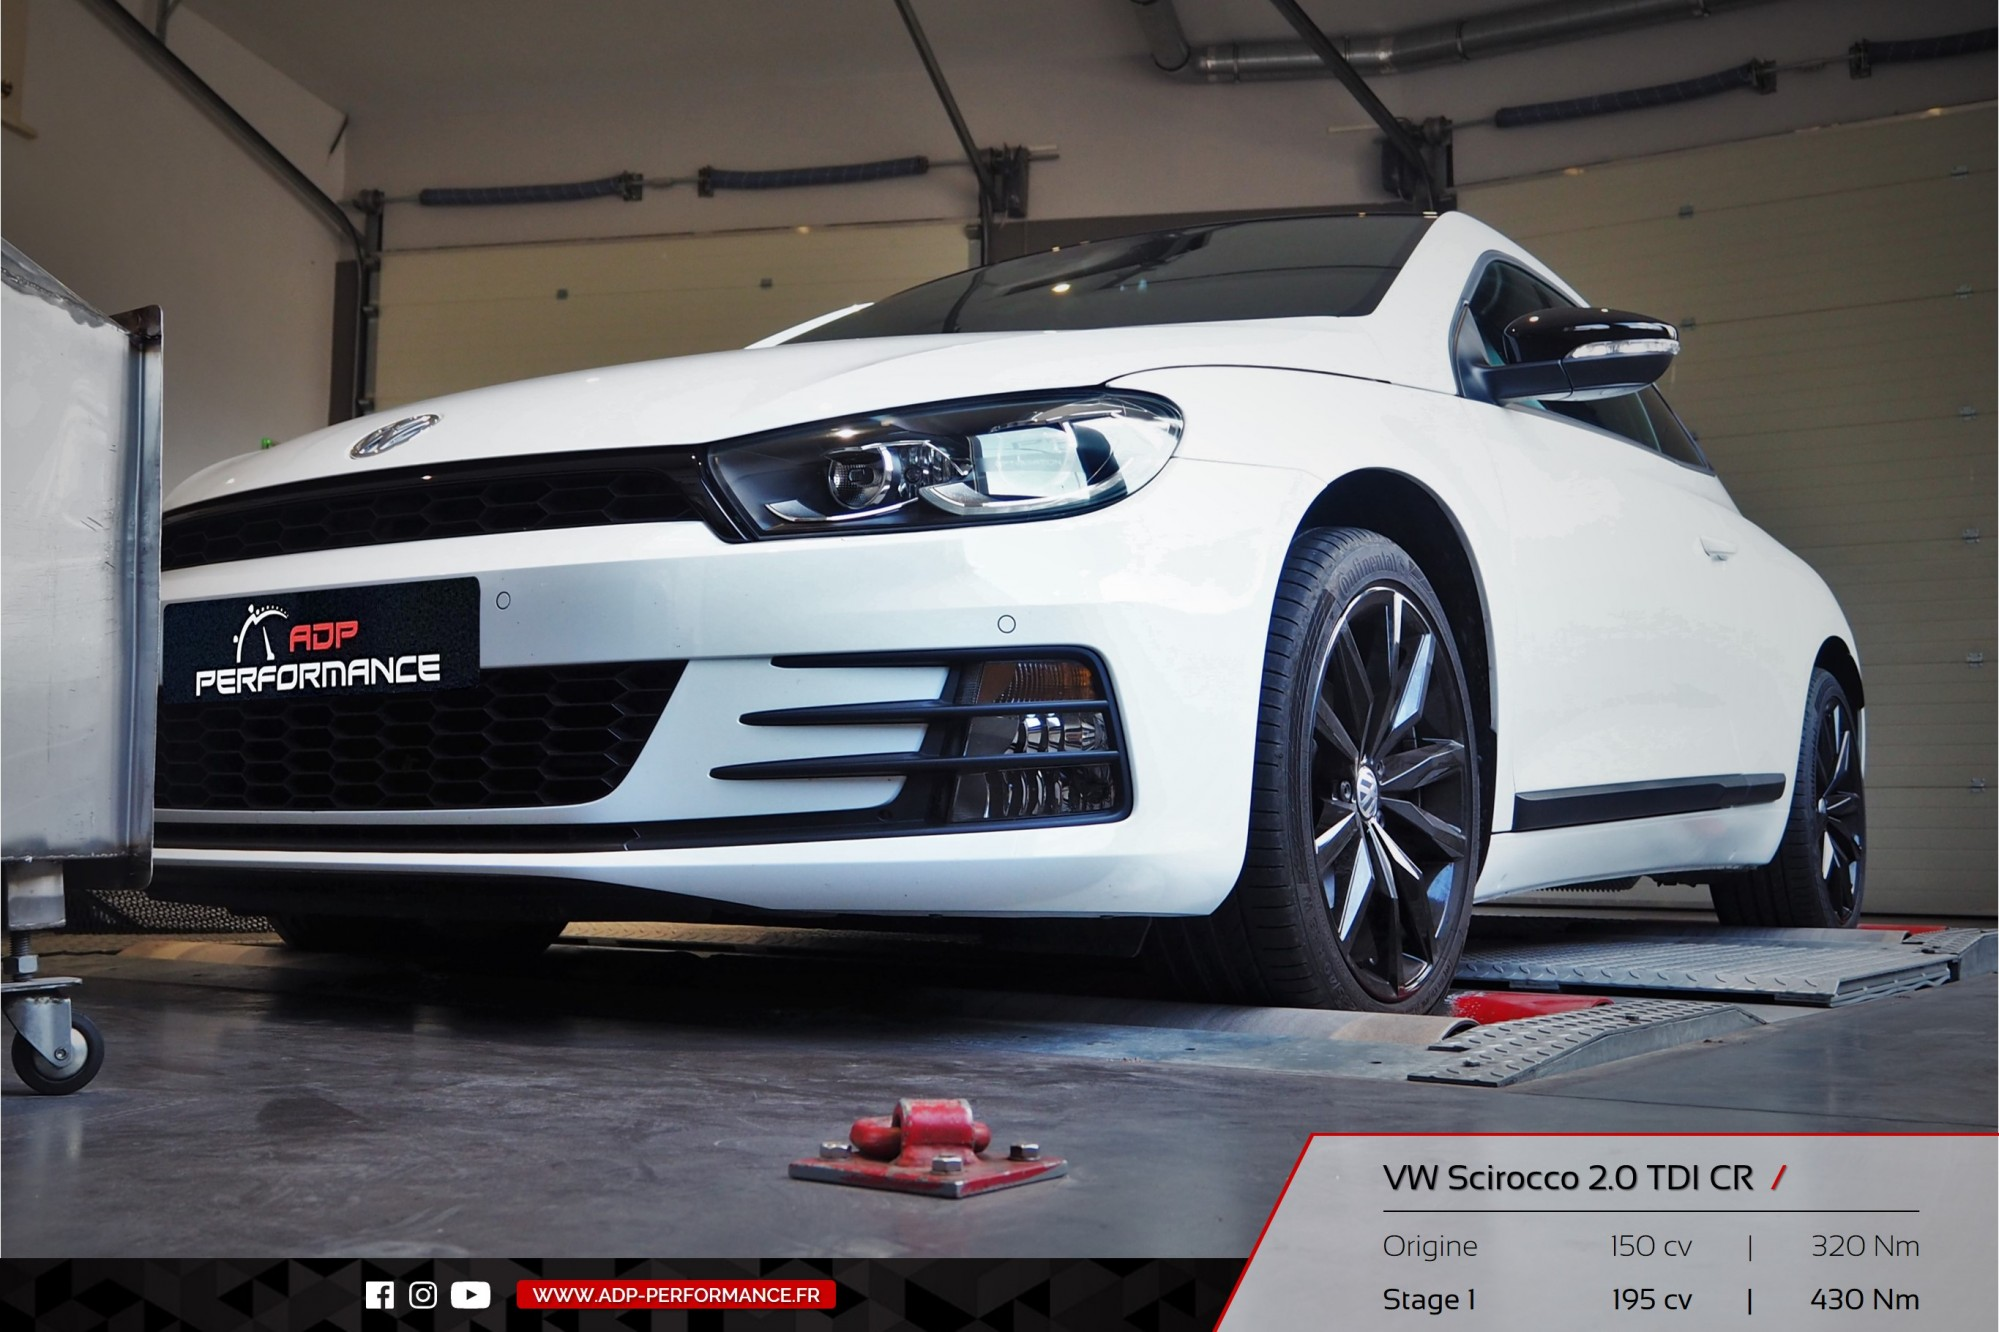 reprogrammation moteur vw scirocco 2 0 tdi cr montpellier realisations reprogrammation auto. Black Bedroom Furniture Sets. Home Design Ideas